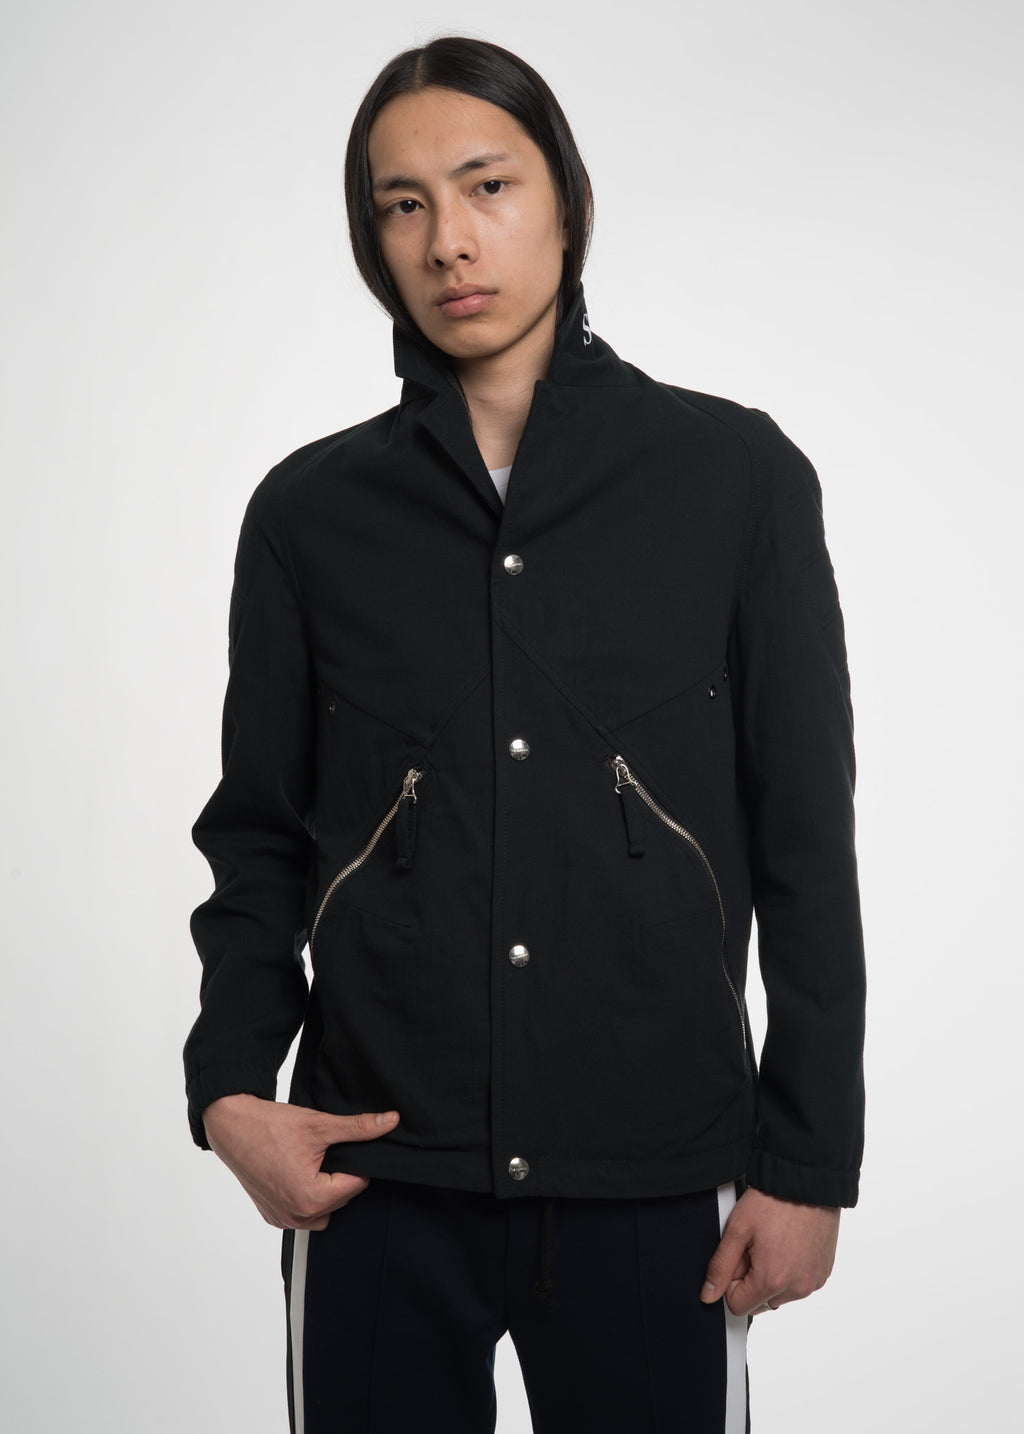 Black Coach Jacket